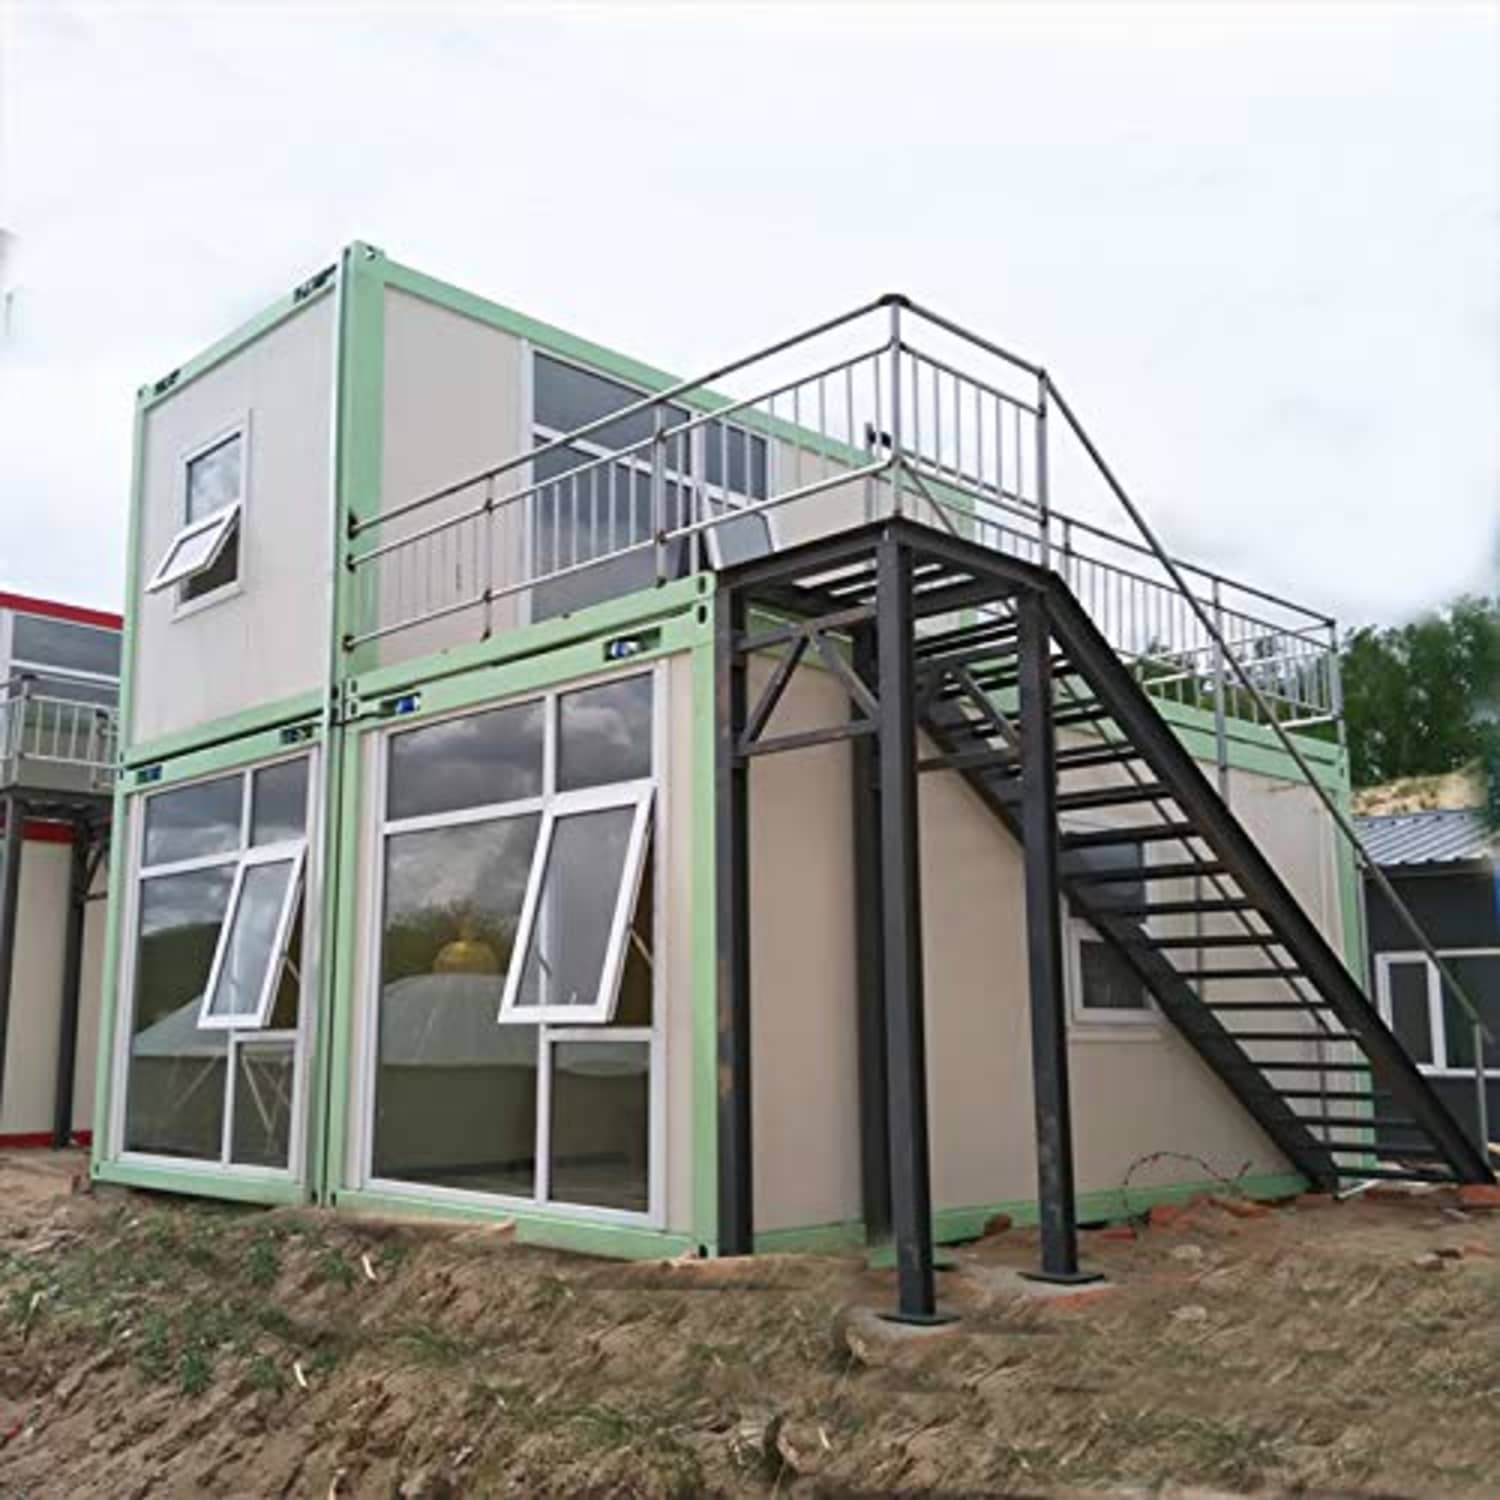 This Prefab Container House Sleeps Four and Has a Roof Deck